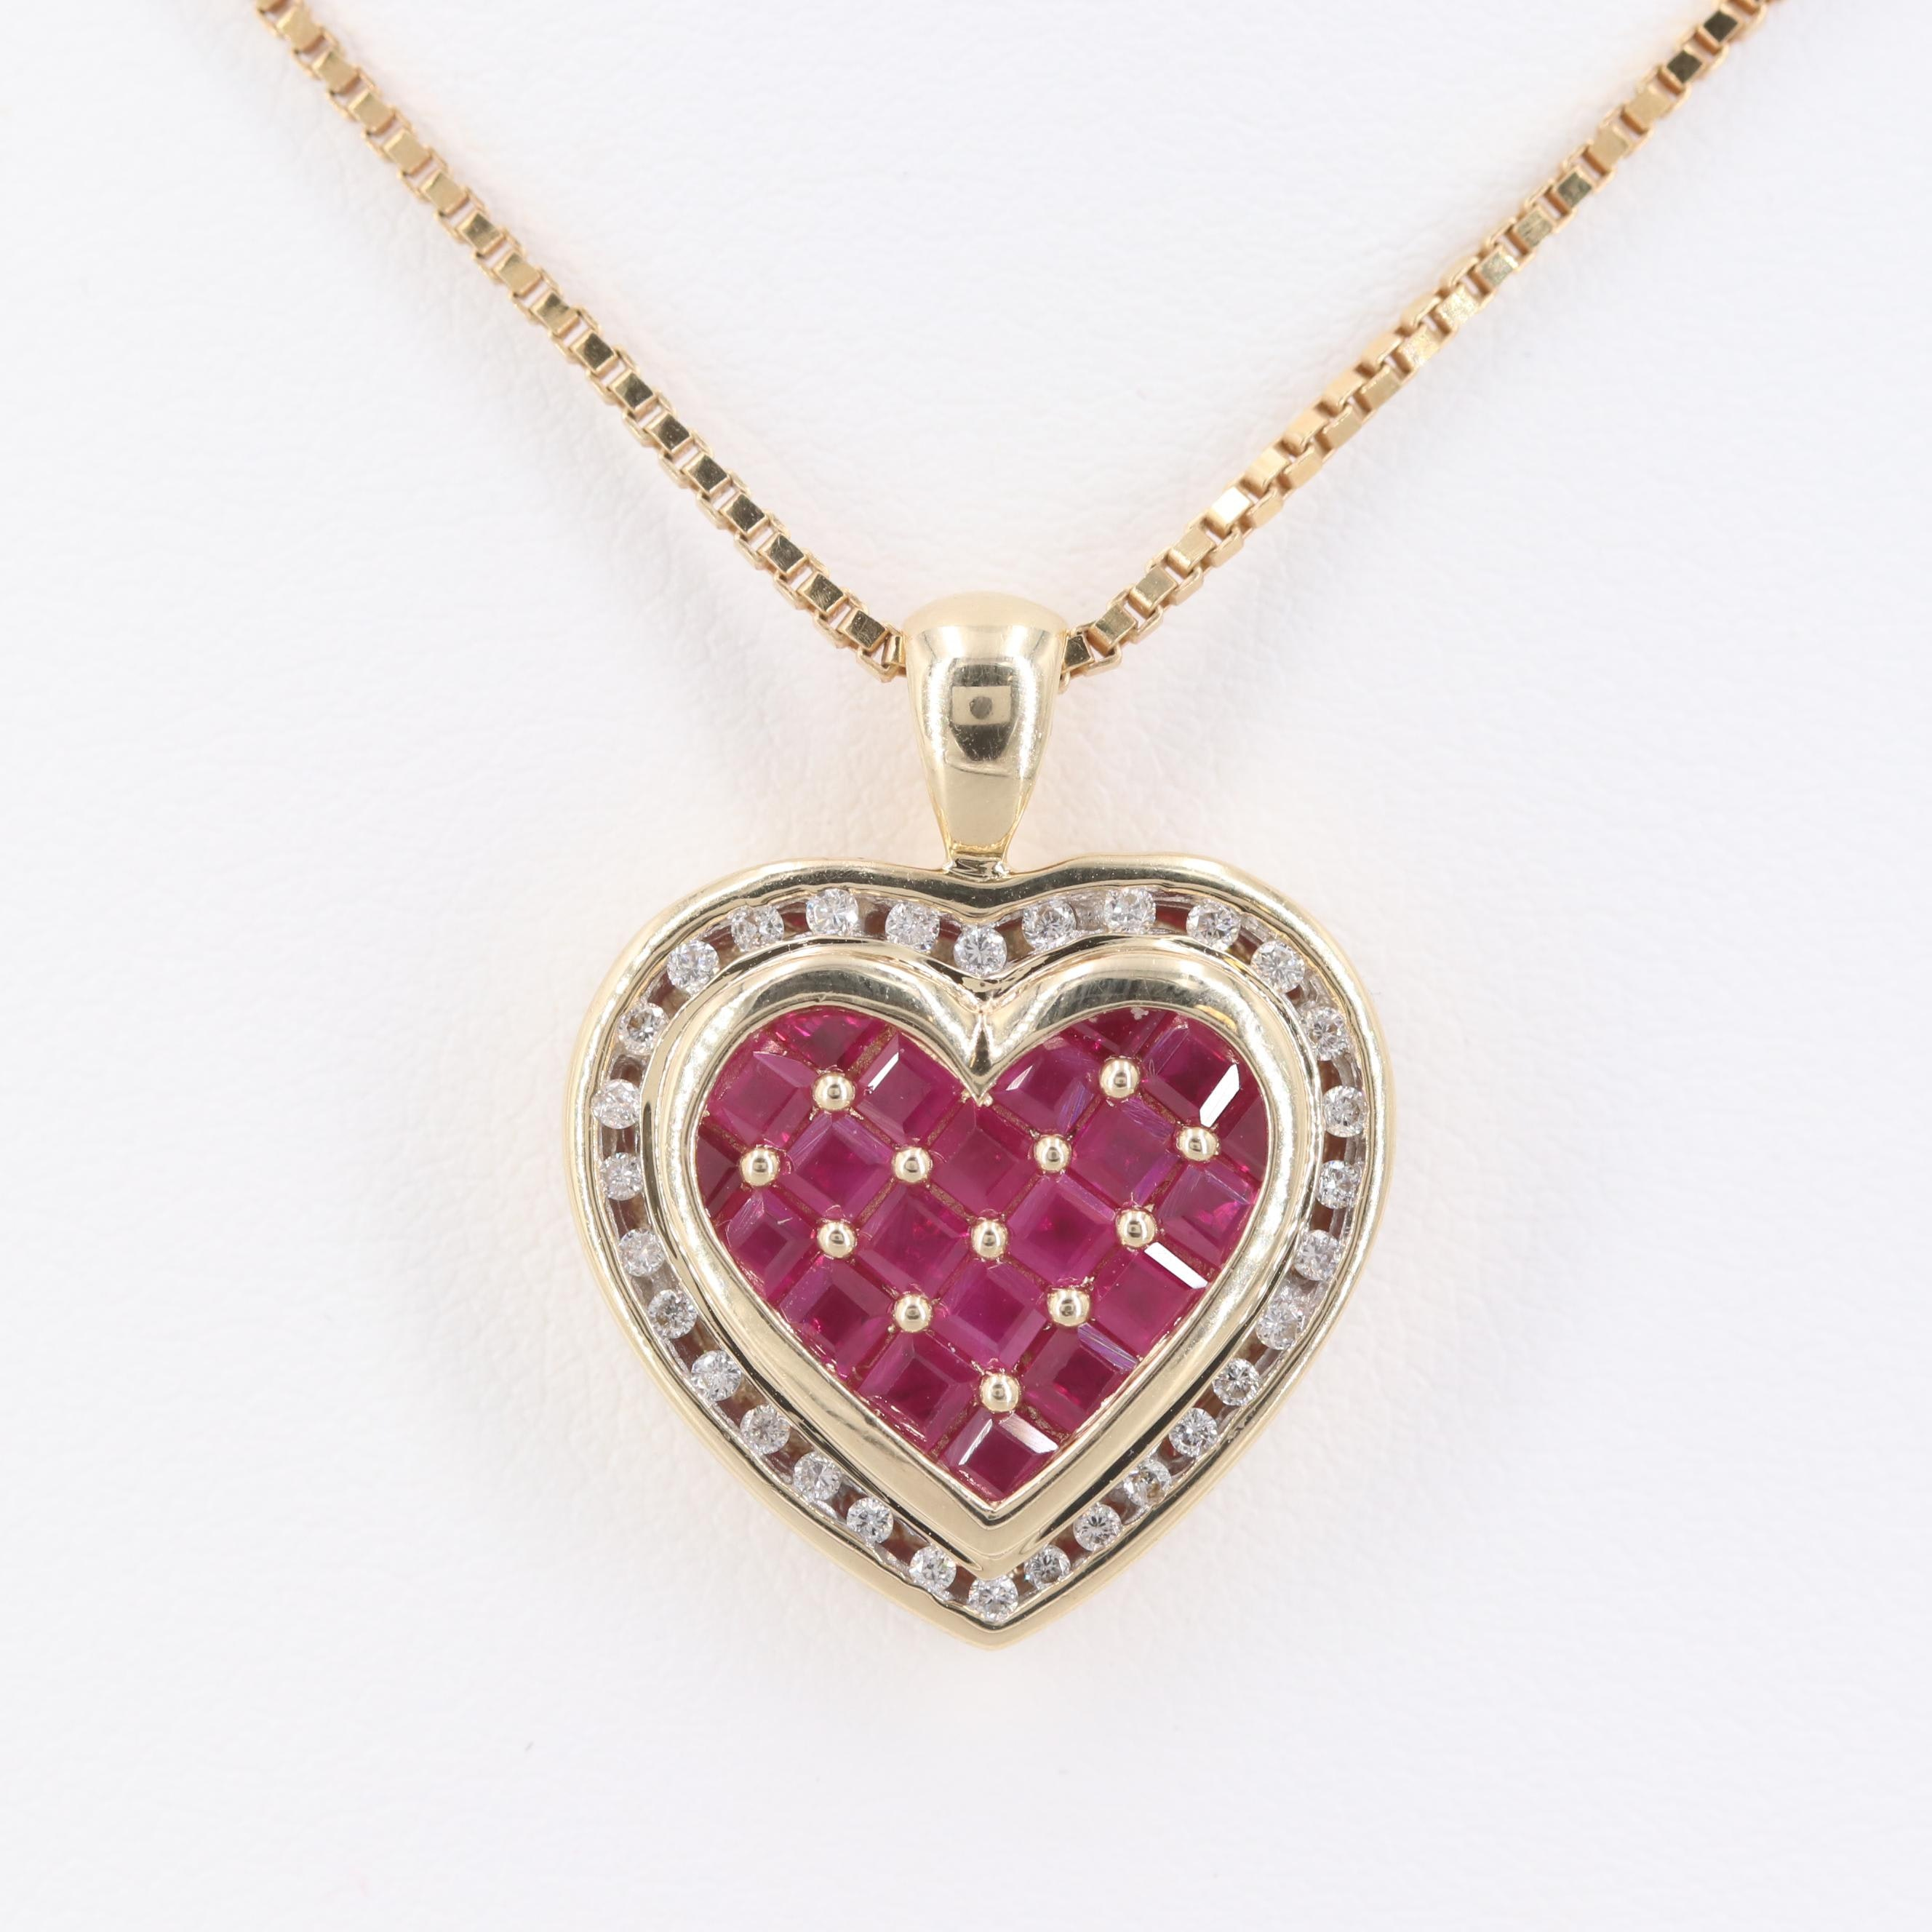 14K Yellow Gold Ruby and Diamond Heart Pendant Necklace